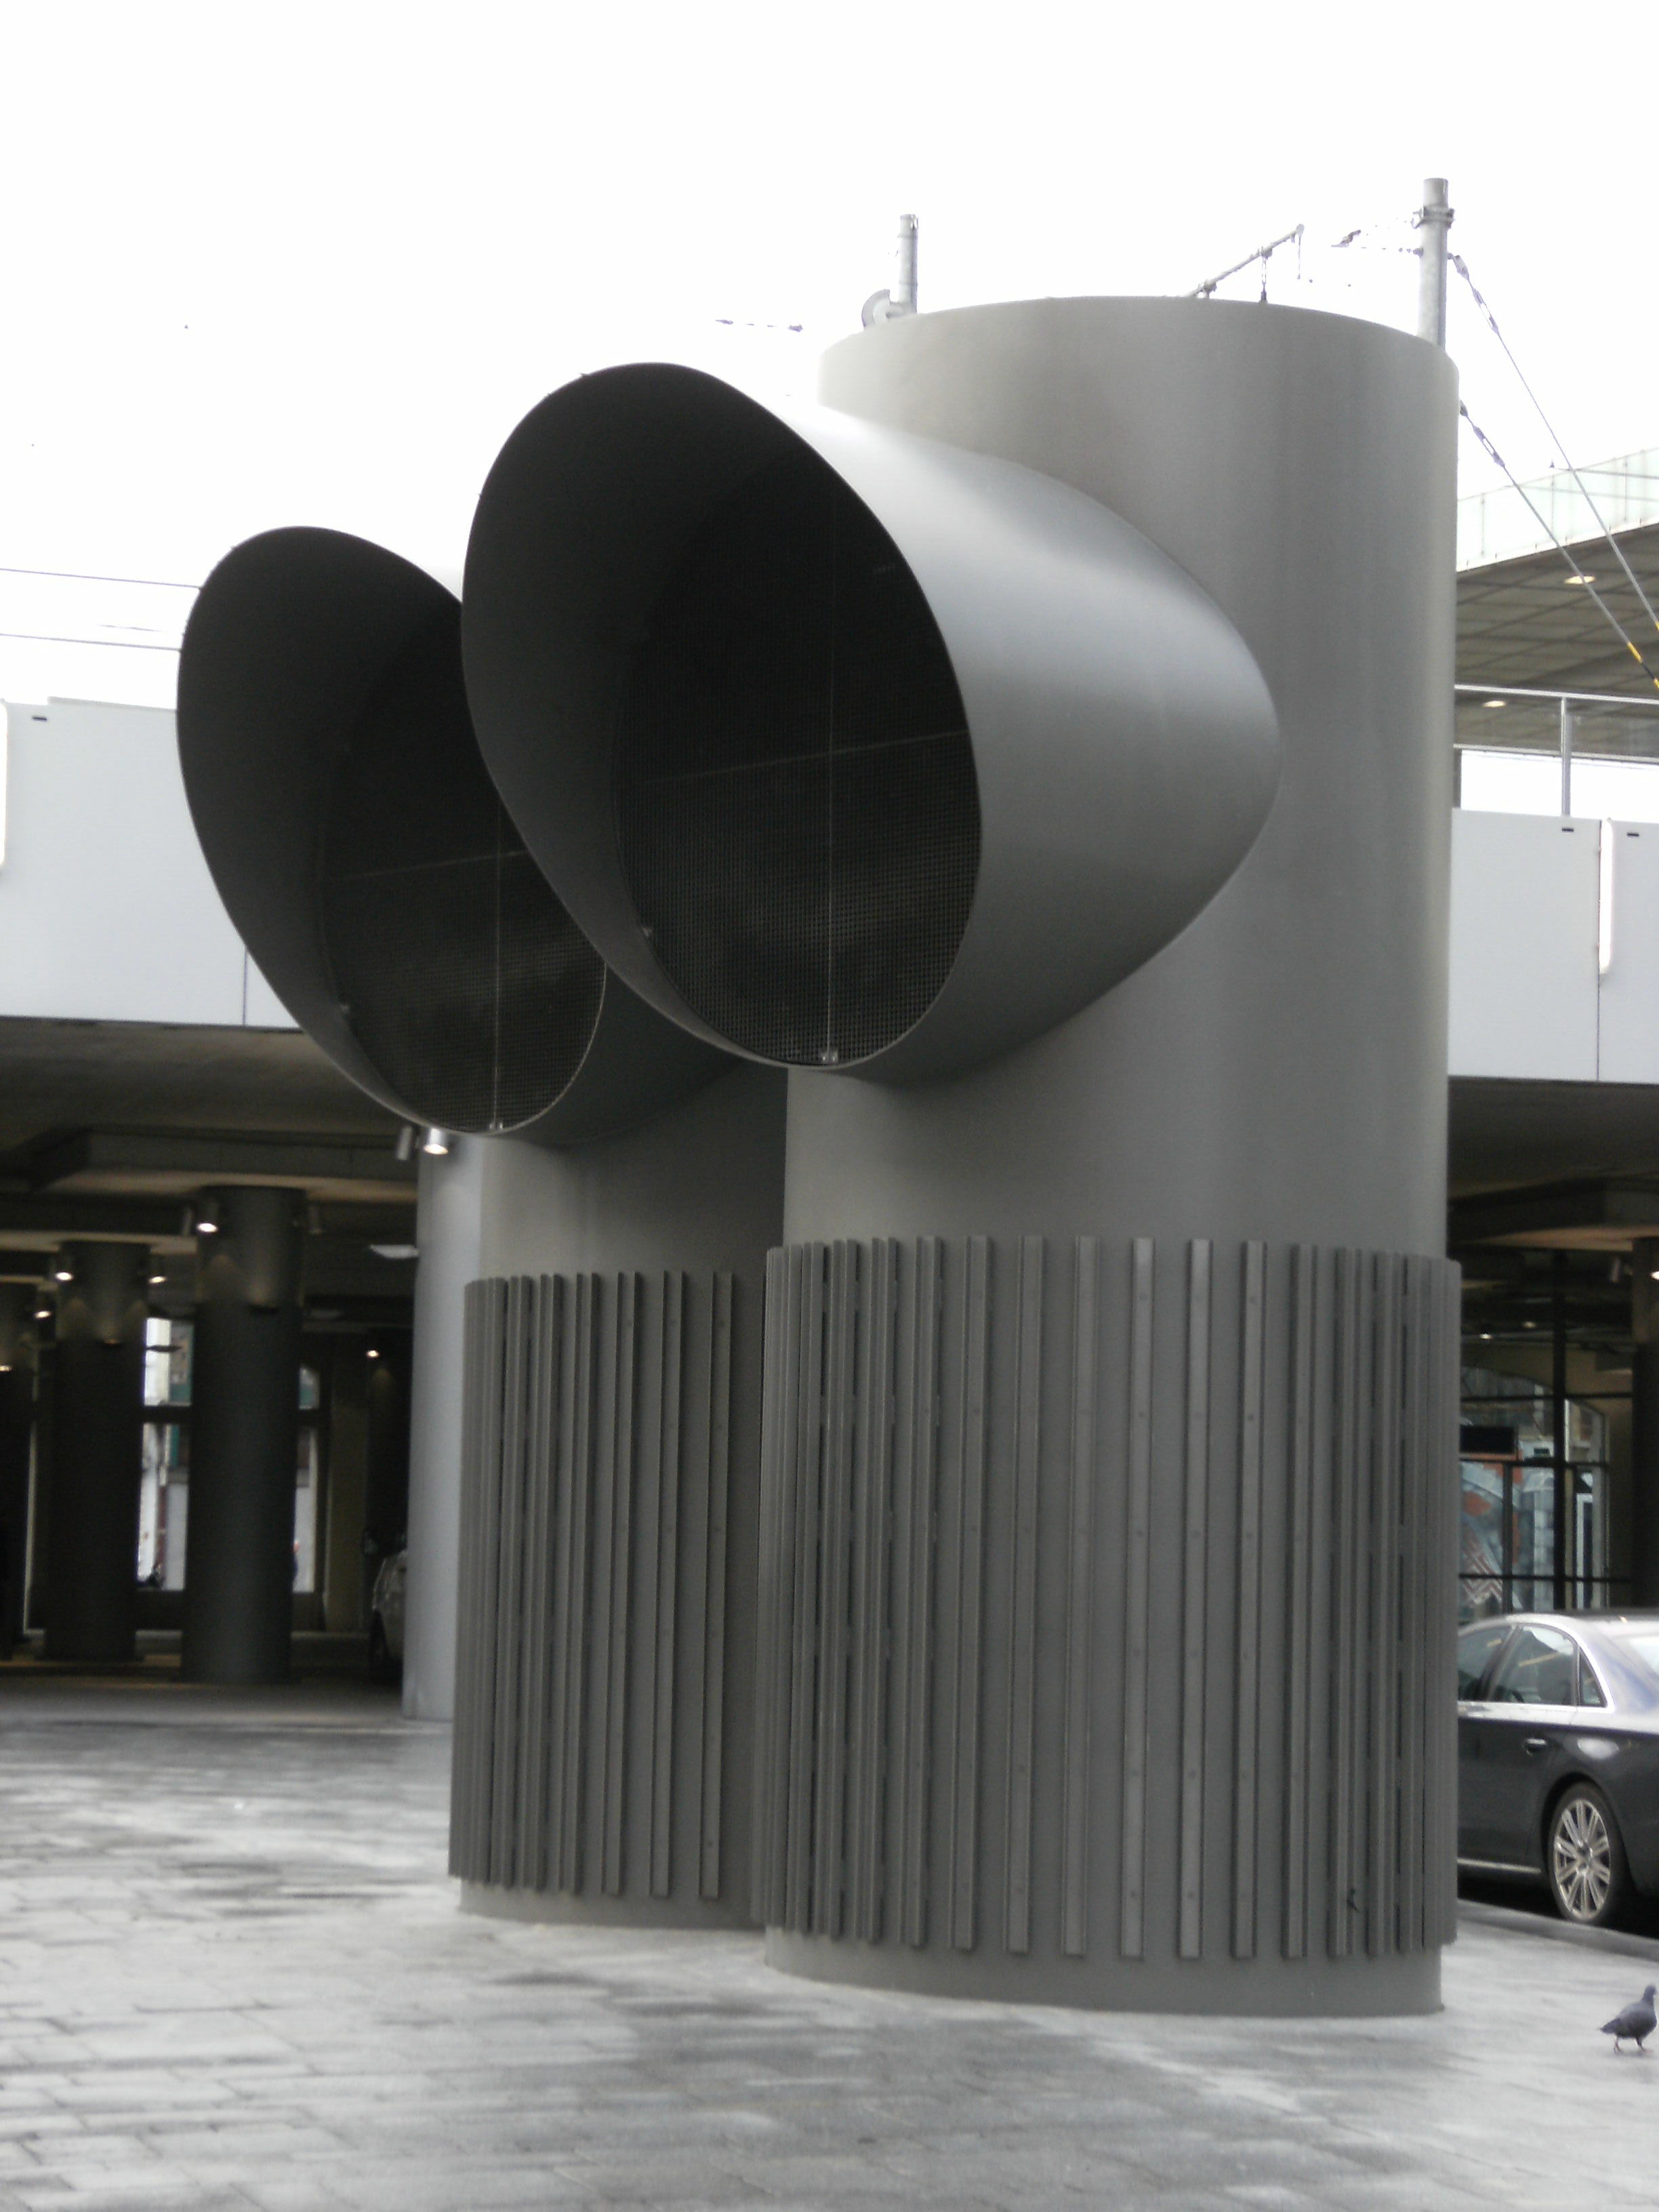 File:Air ducts Antwerpen station.jpg Wikimedia Commons  #595146